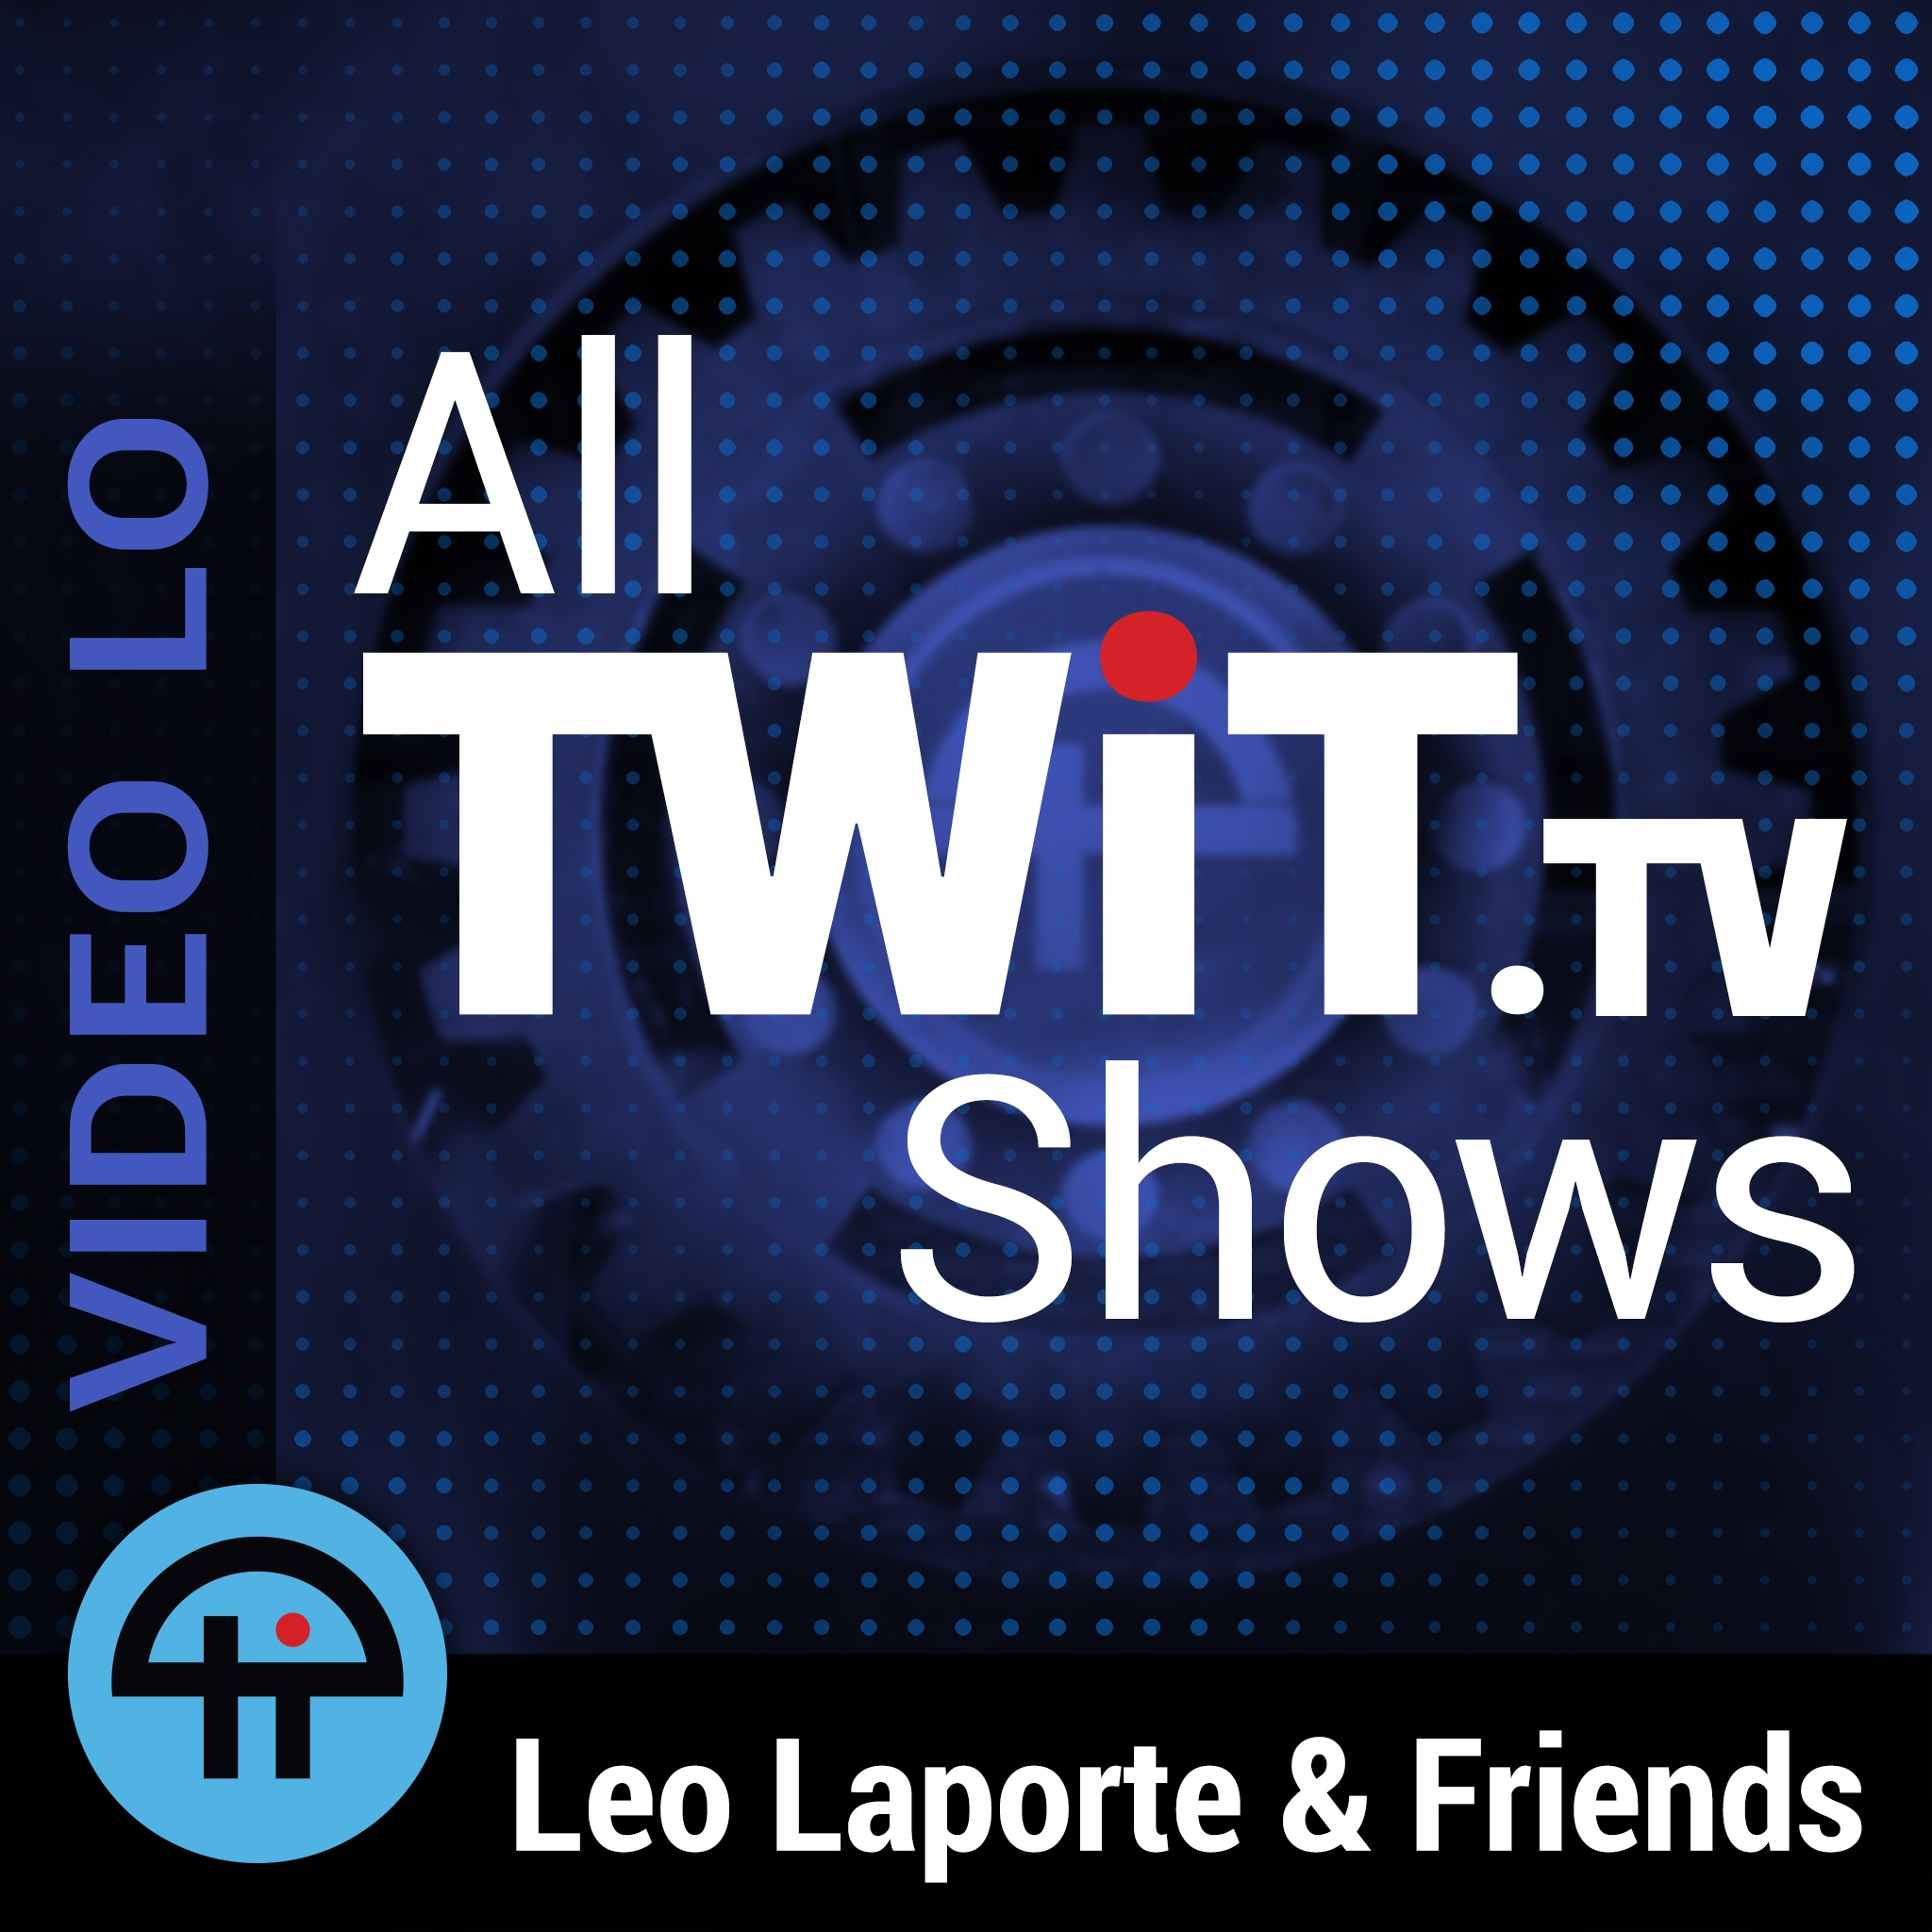 All TWiT.tv Shows (Video-LO)